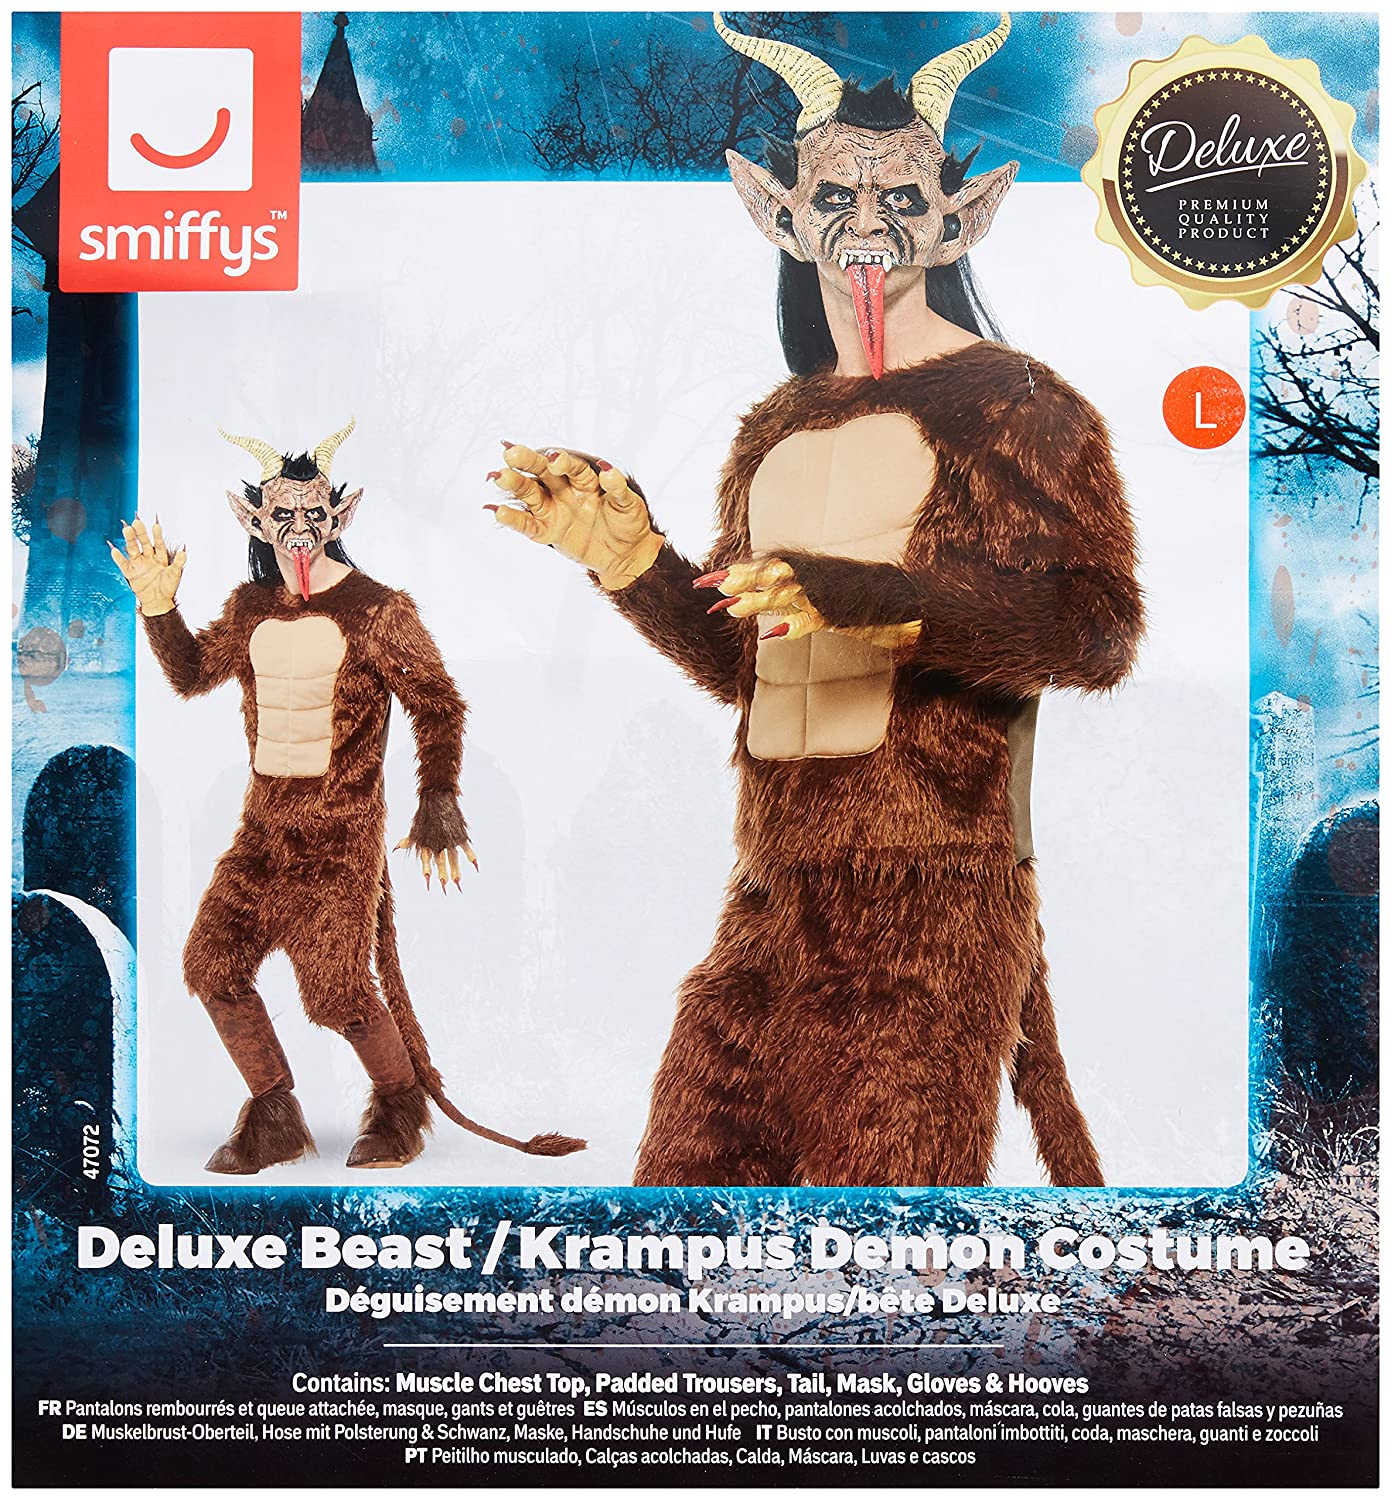 Amazon.com: Smiffys Mens Beast/Krampus Demon Costume, Long Pile Fur: Clothing